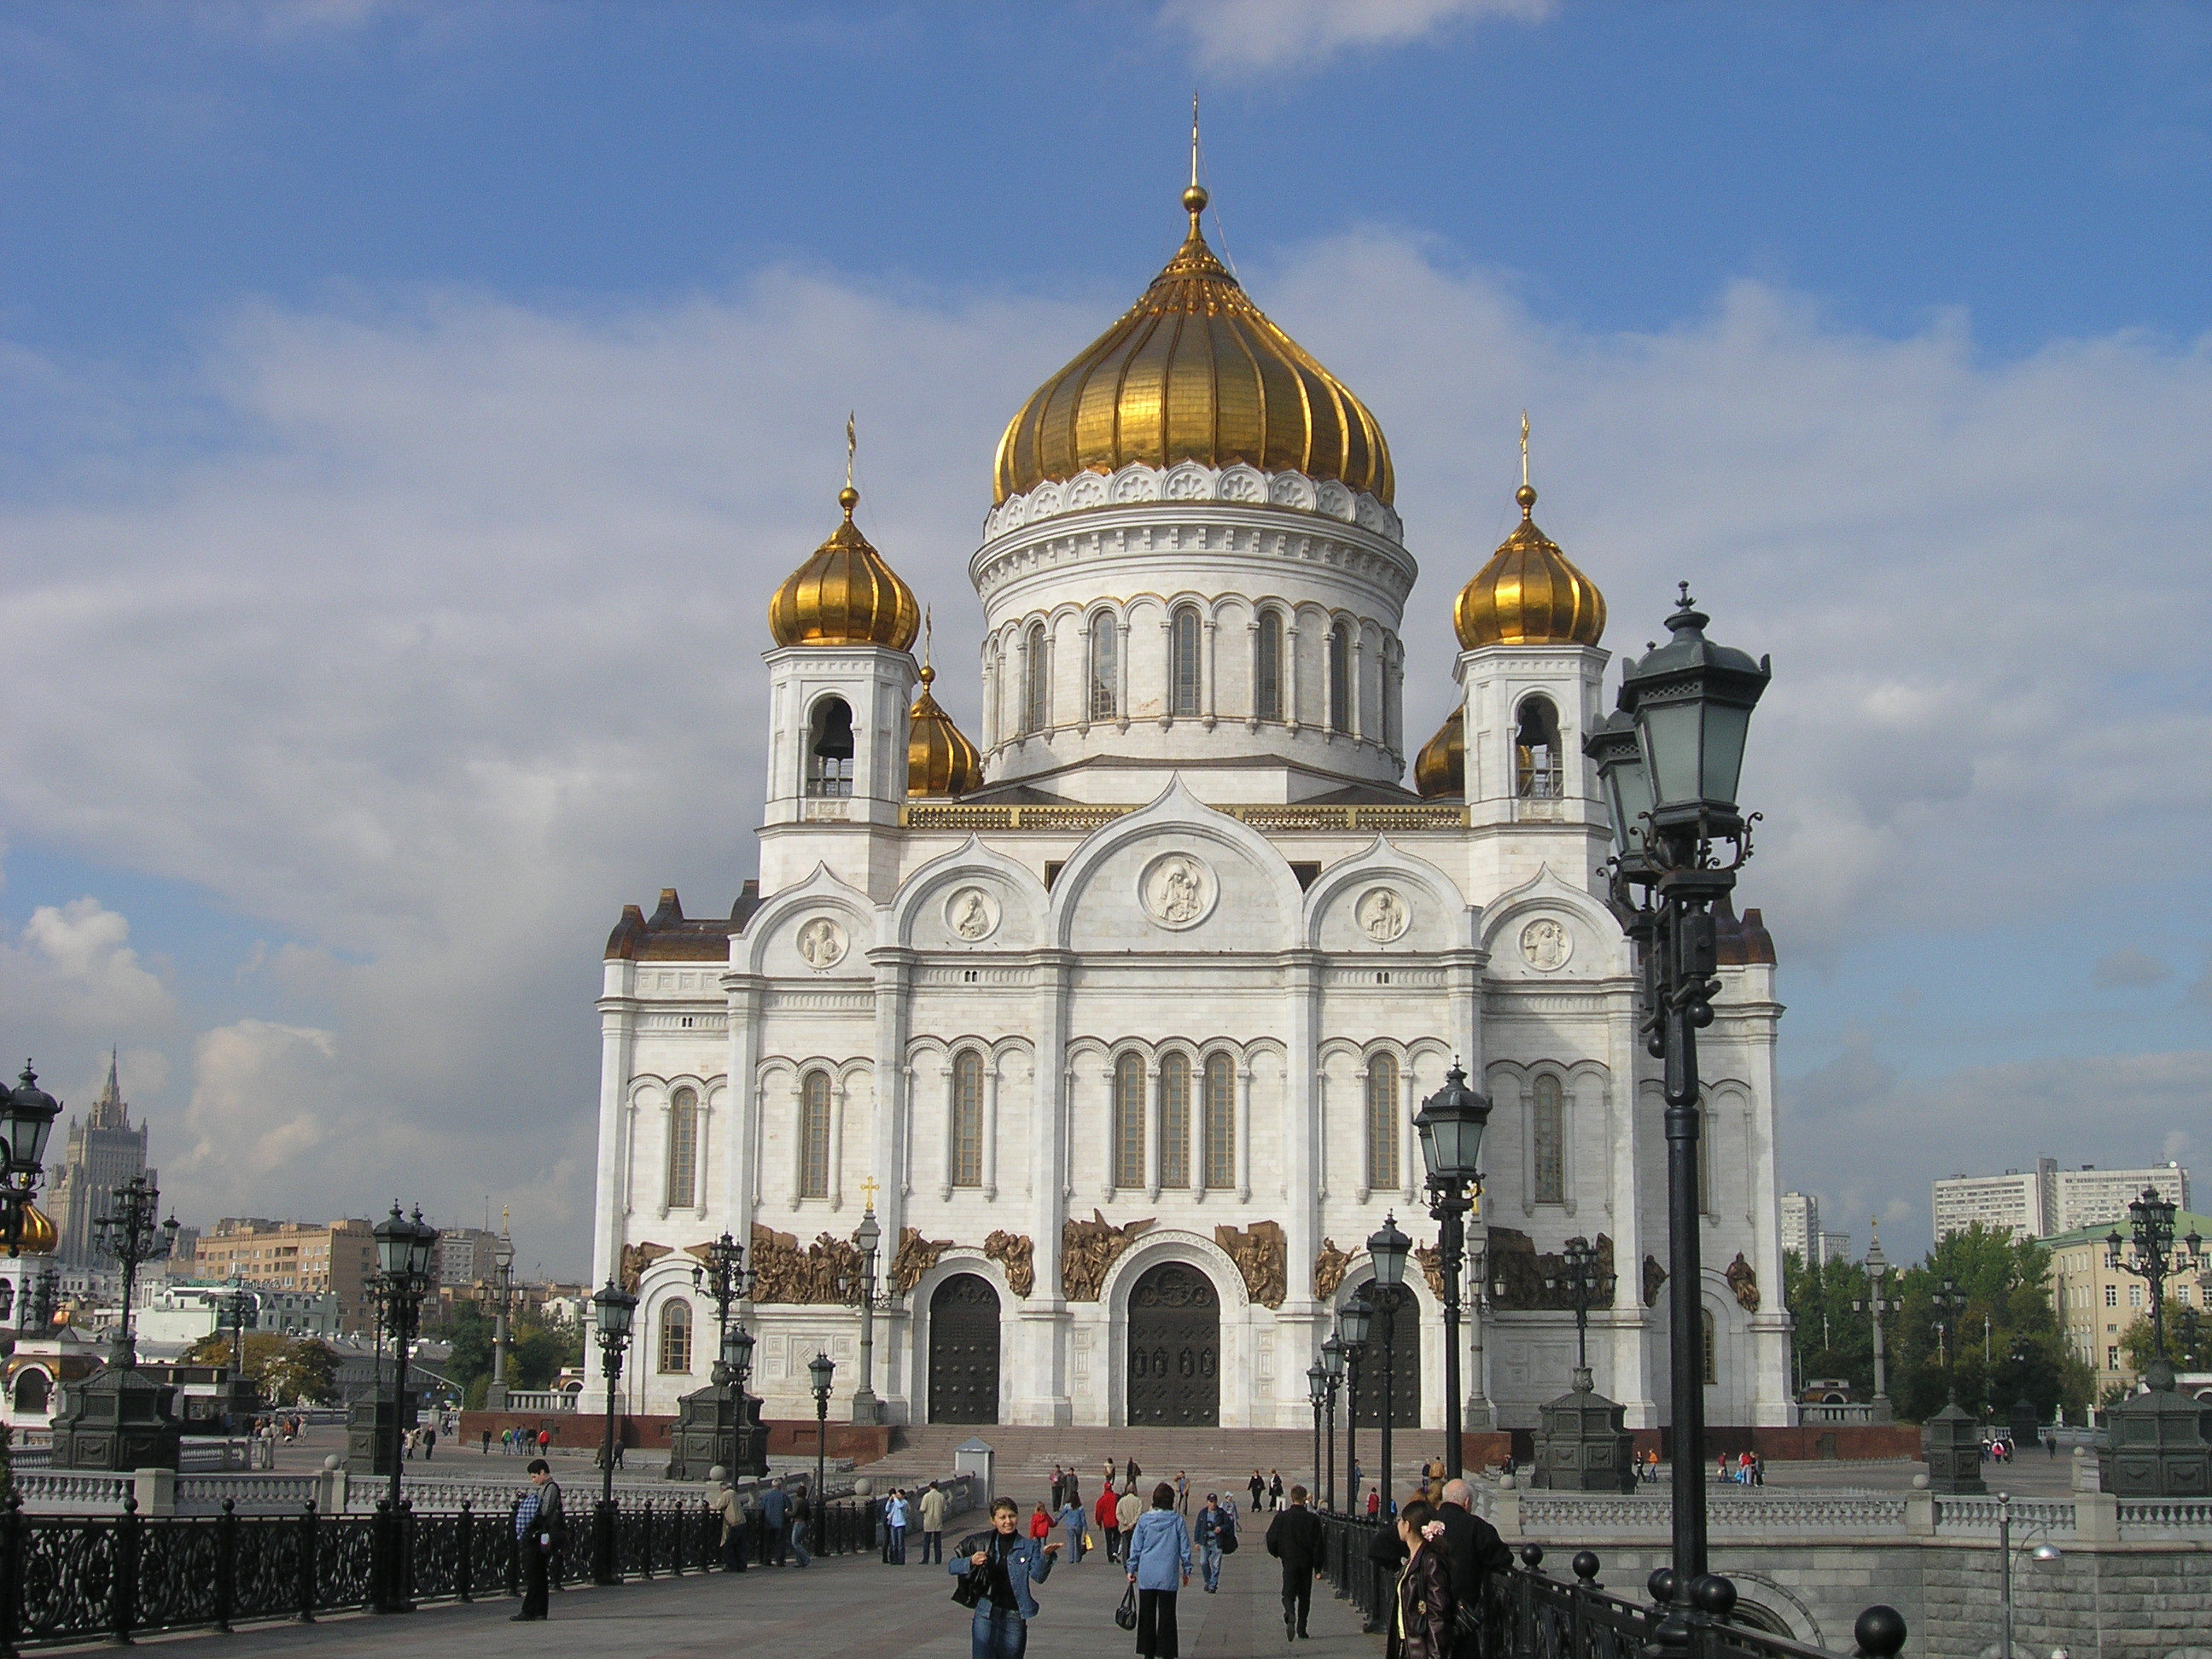 http://upload.wikimedia.org/wikipedia/commons/d/db/Russia-Moscow-Cathedral_of_Christ_the_Saviour-6.jpg